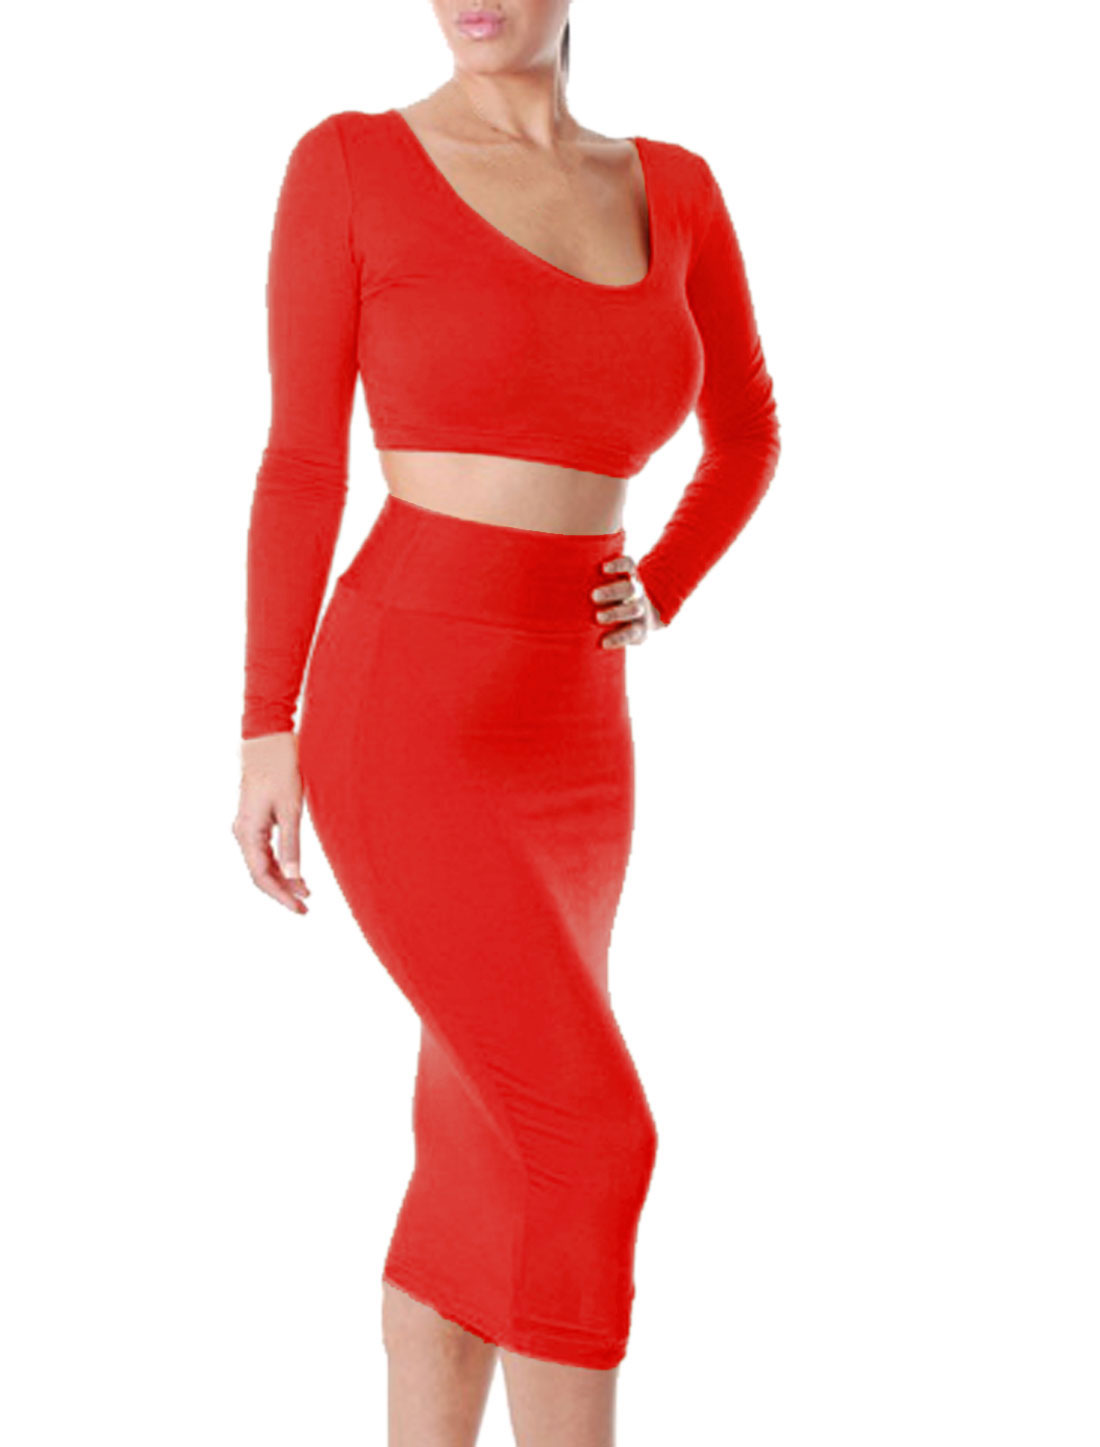 Form-fitting Belero Top w Stretchy Straight Skirt Sets for Lady Red XL